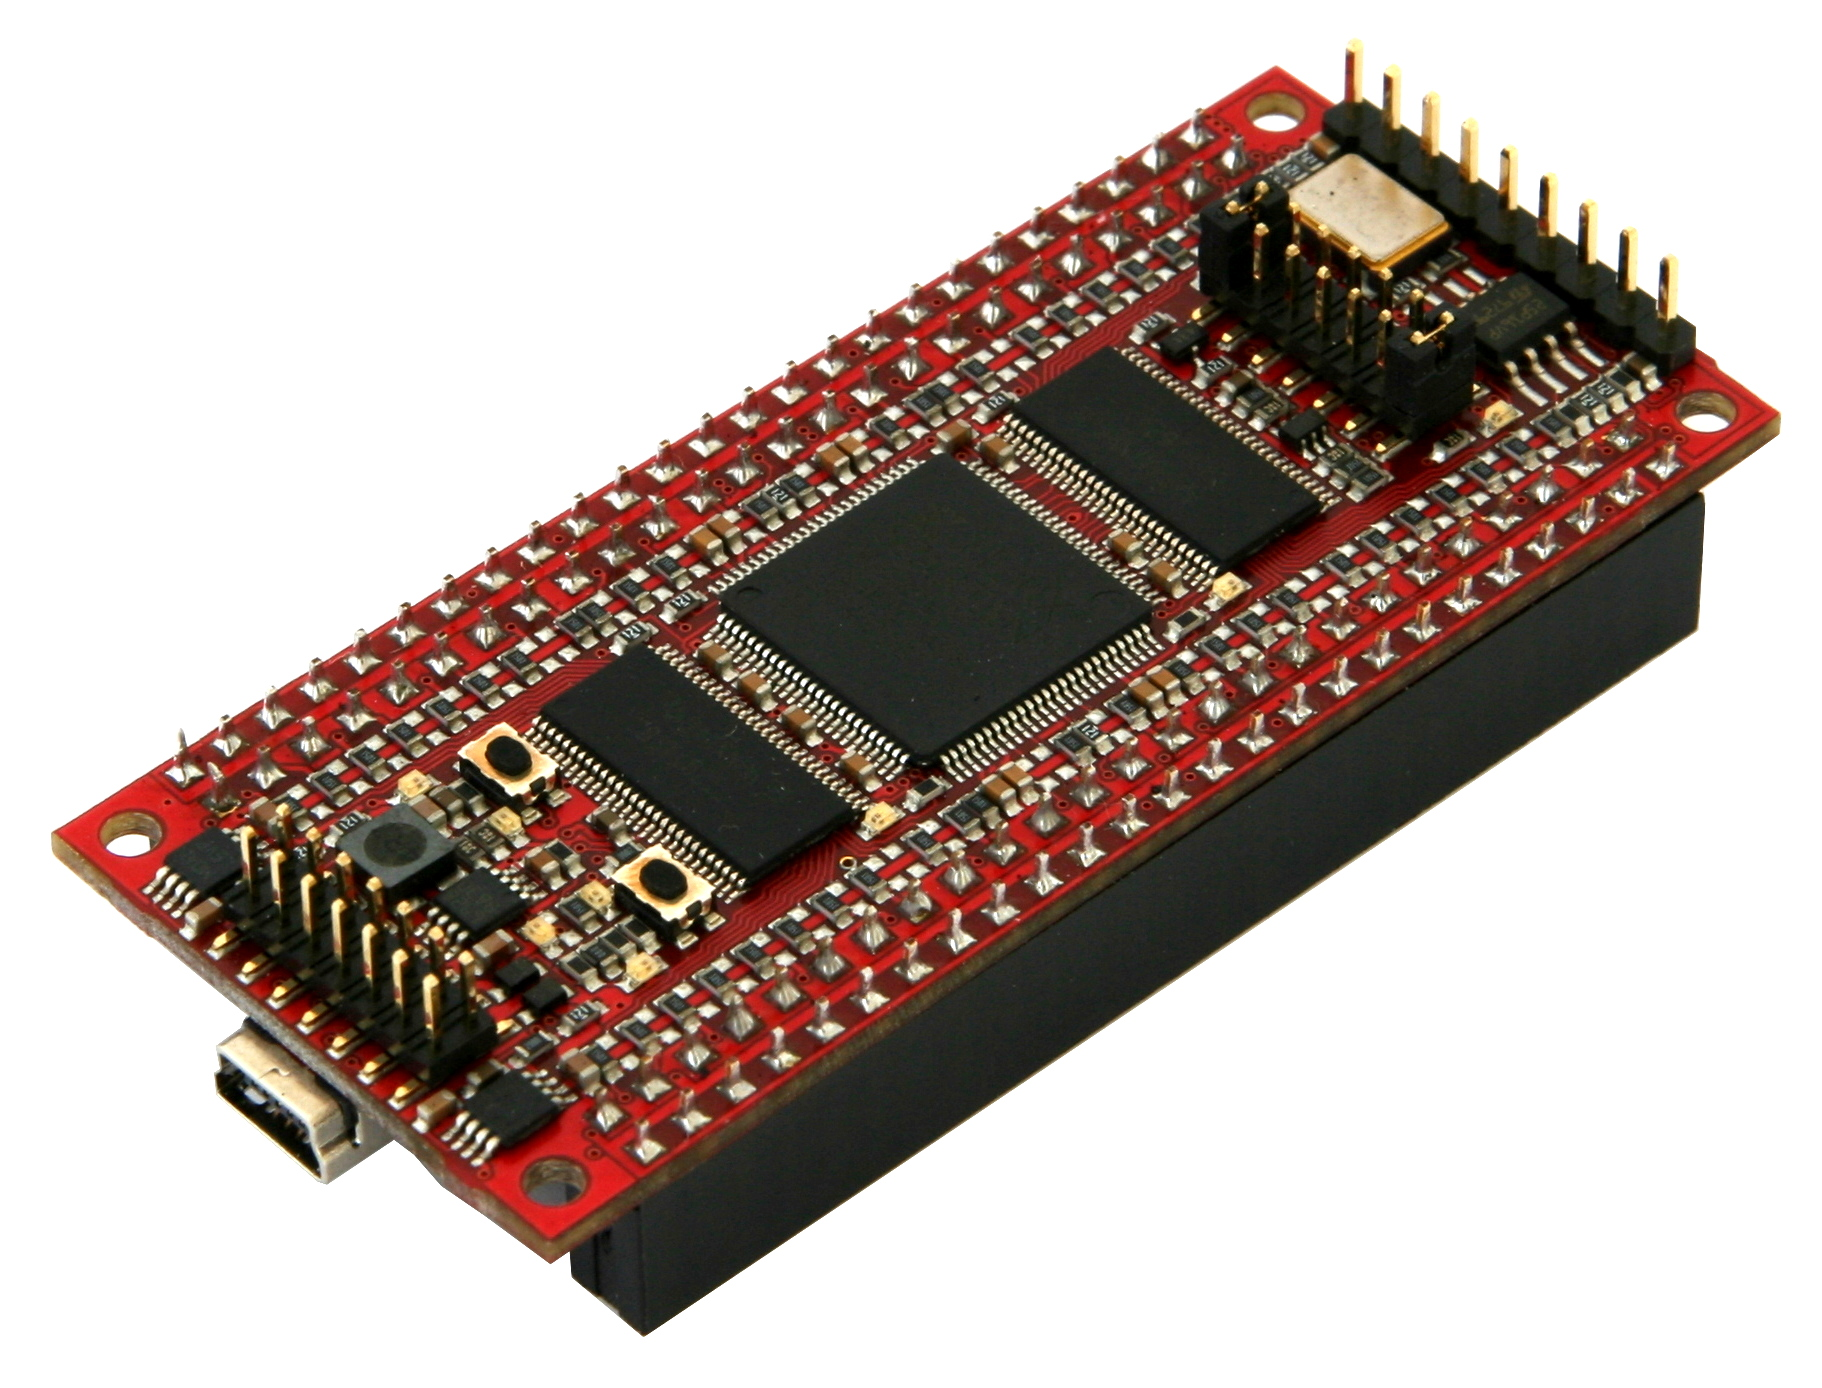 Nexys 4 Ddr Artix 7 Fpga Trainer Board Recommended For Ece Curriculum Download Read Ebook Arduino Dummies Free Pdf Ebook969w Size 71944 Kb Modified 23022009 092347